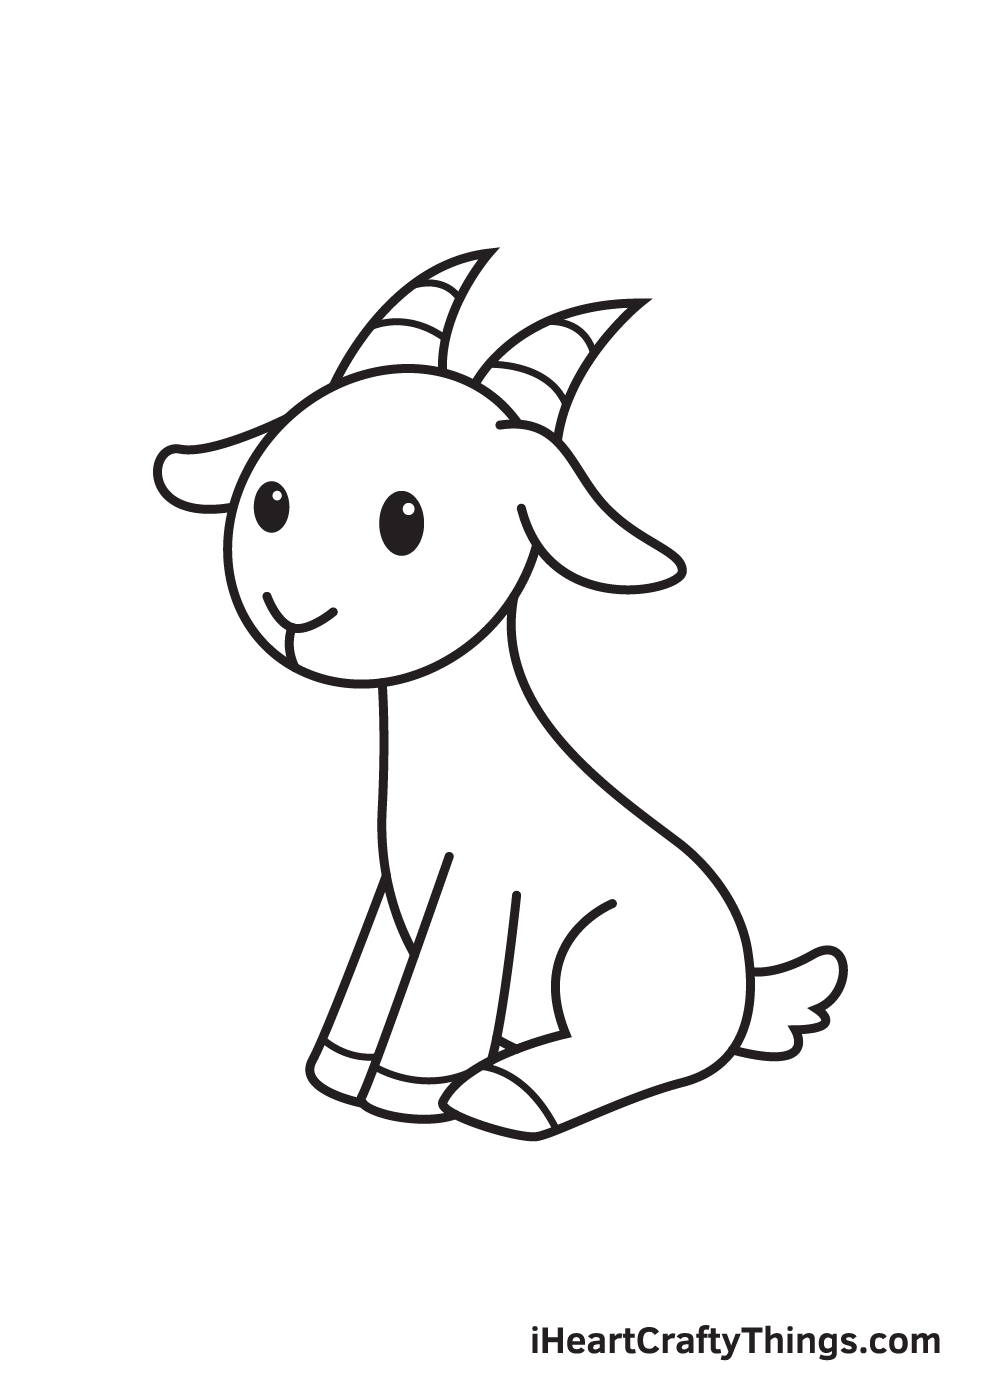 goat drawing - step 9